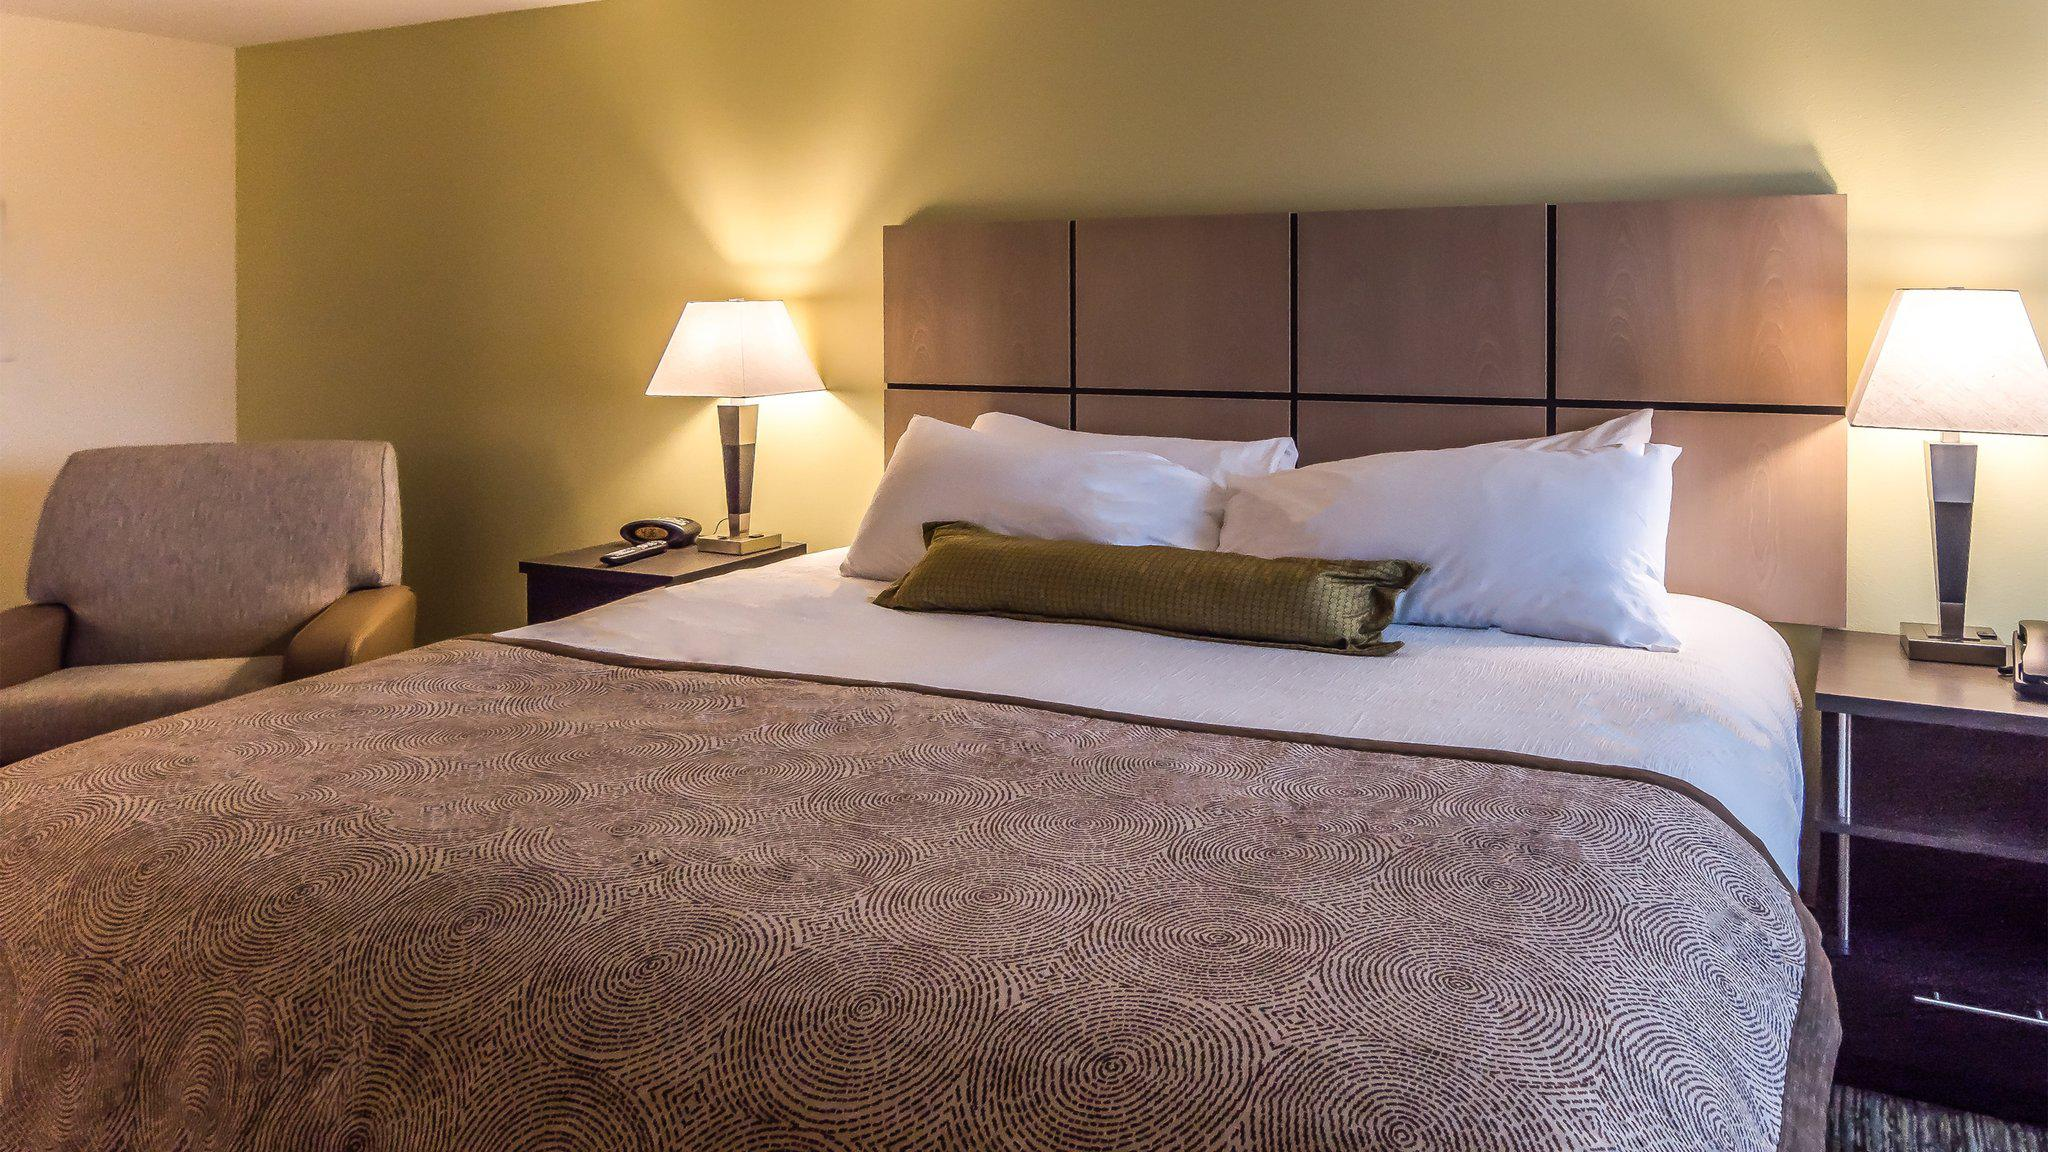 Candlewood Suites Gonzales - Baton Rouge Area, an IHG Hotel